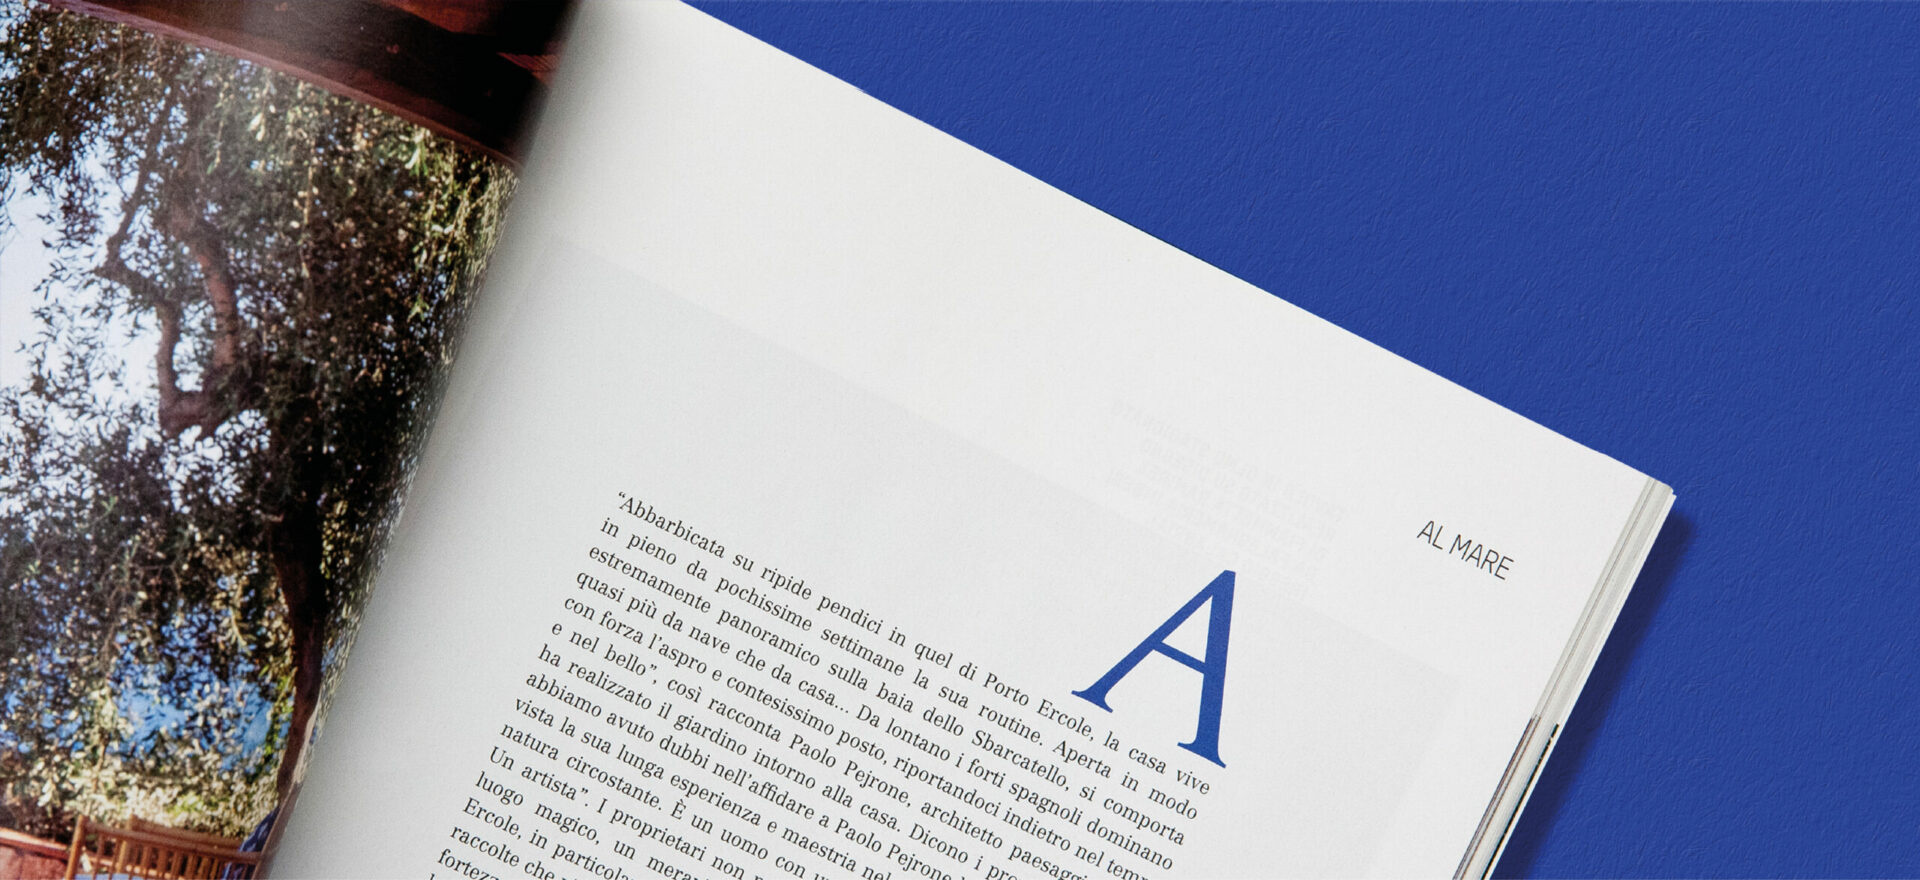 Close up photo of an opened Ville Giardini Magazine showing detail of the typography and composition of text and images used in the project of the Art Direction and Graphic Design for Visibilia Editore in a blue background.